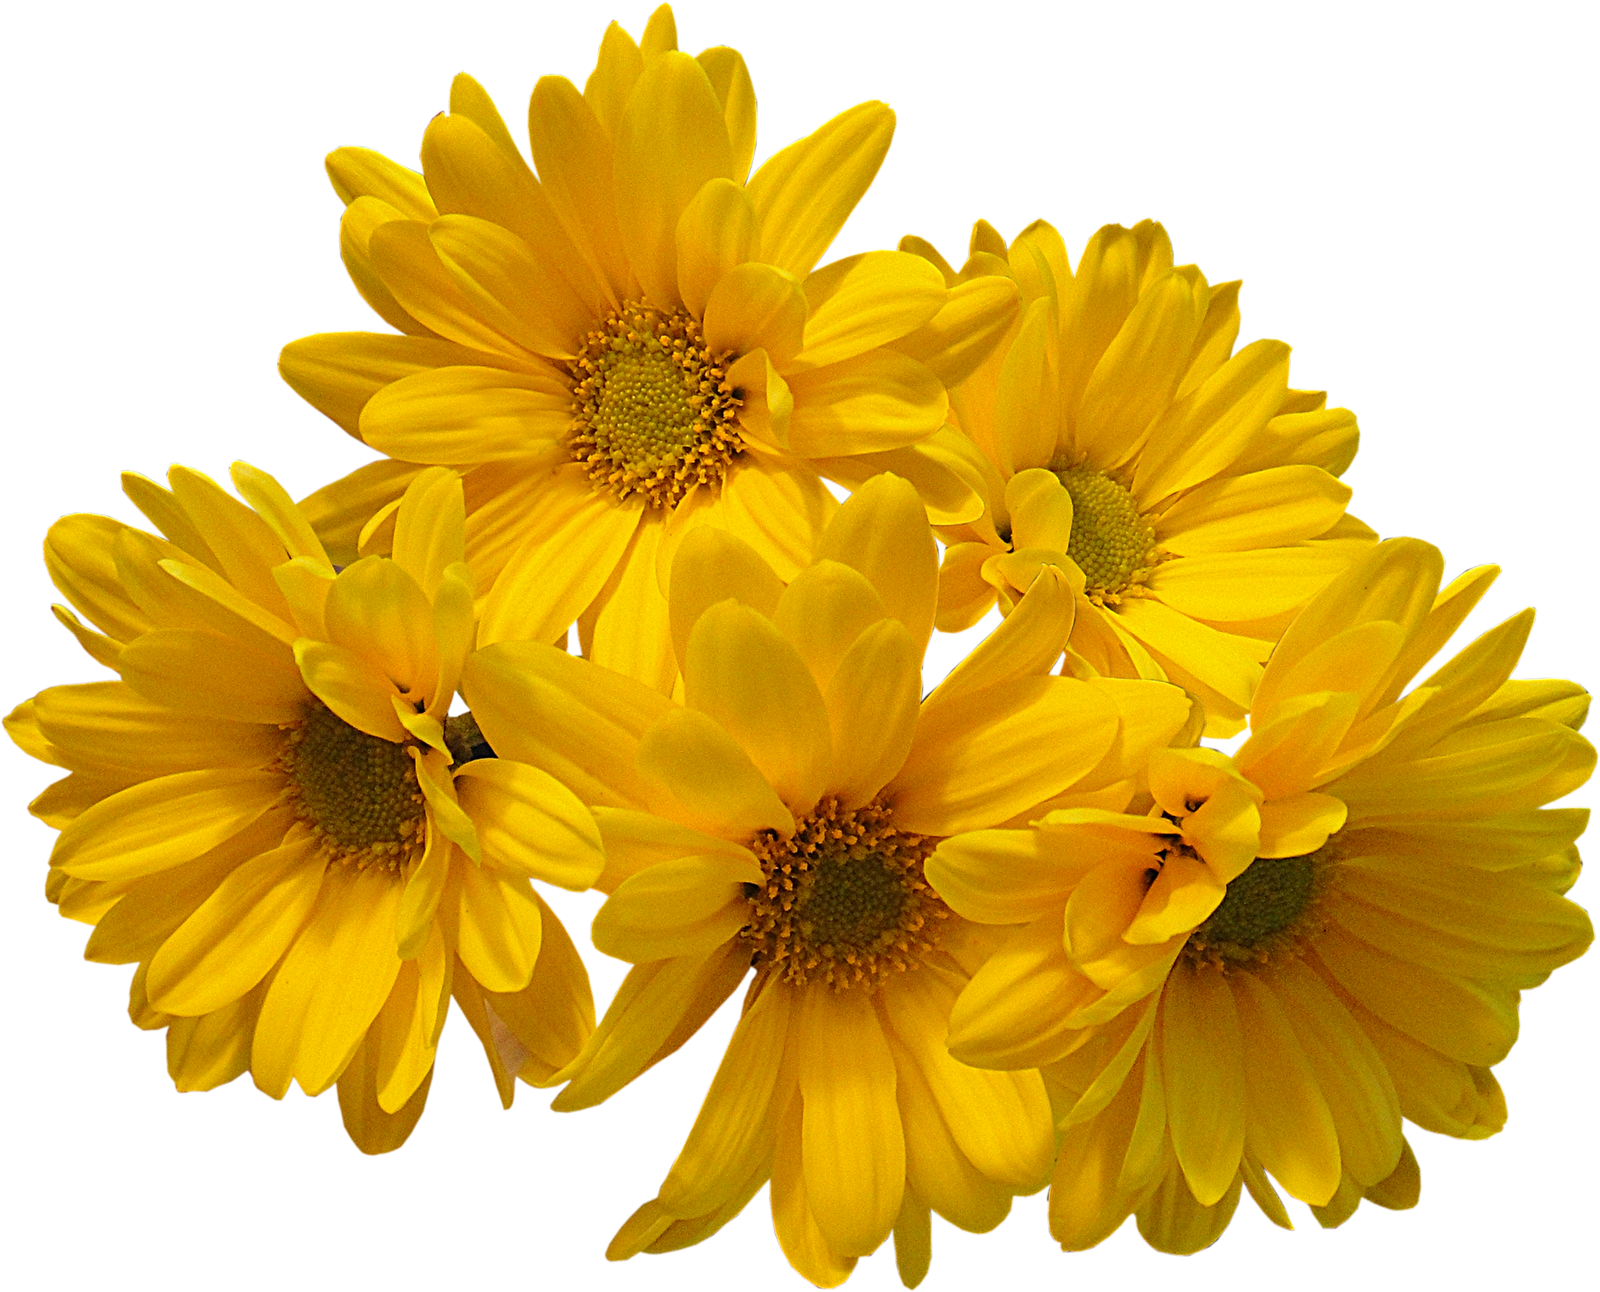 Yellow flowers png. Bouquet transparent image mart